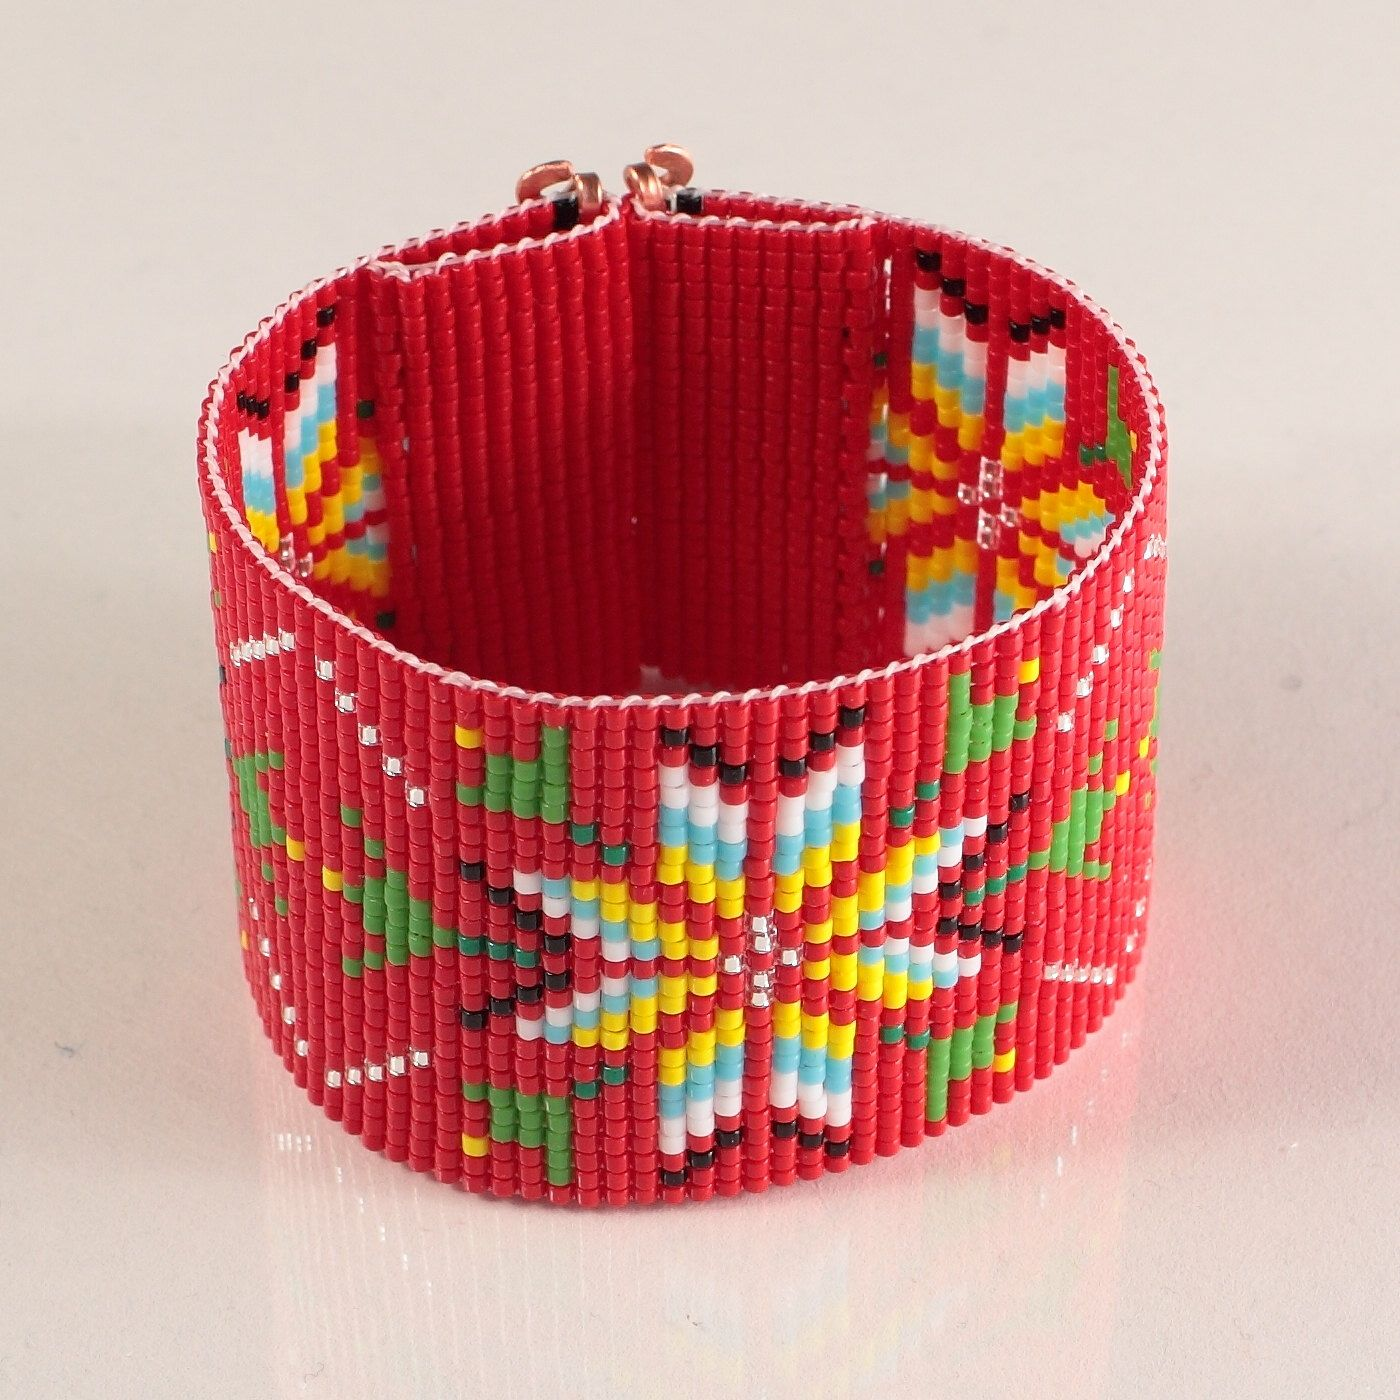 Red Native American Style Wide Cuff Bead Loom Bracelet - Artisanal Jewelry - Southwestern - American Indian Motif Jewelry -Western -Beaded by PuebloAndCo on Etsy https://www.etsy.com/listing/211791037/red-native-american-style-wide-cuff-bead